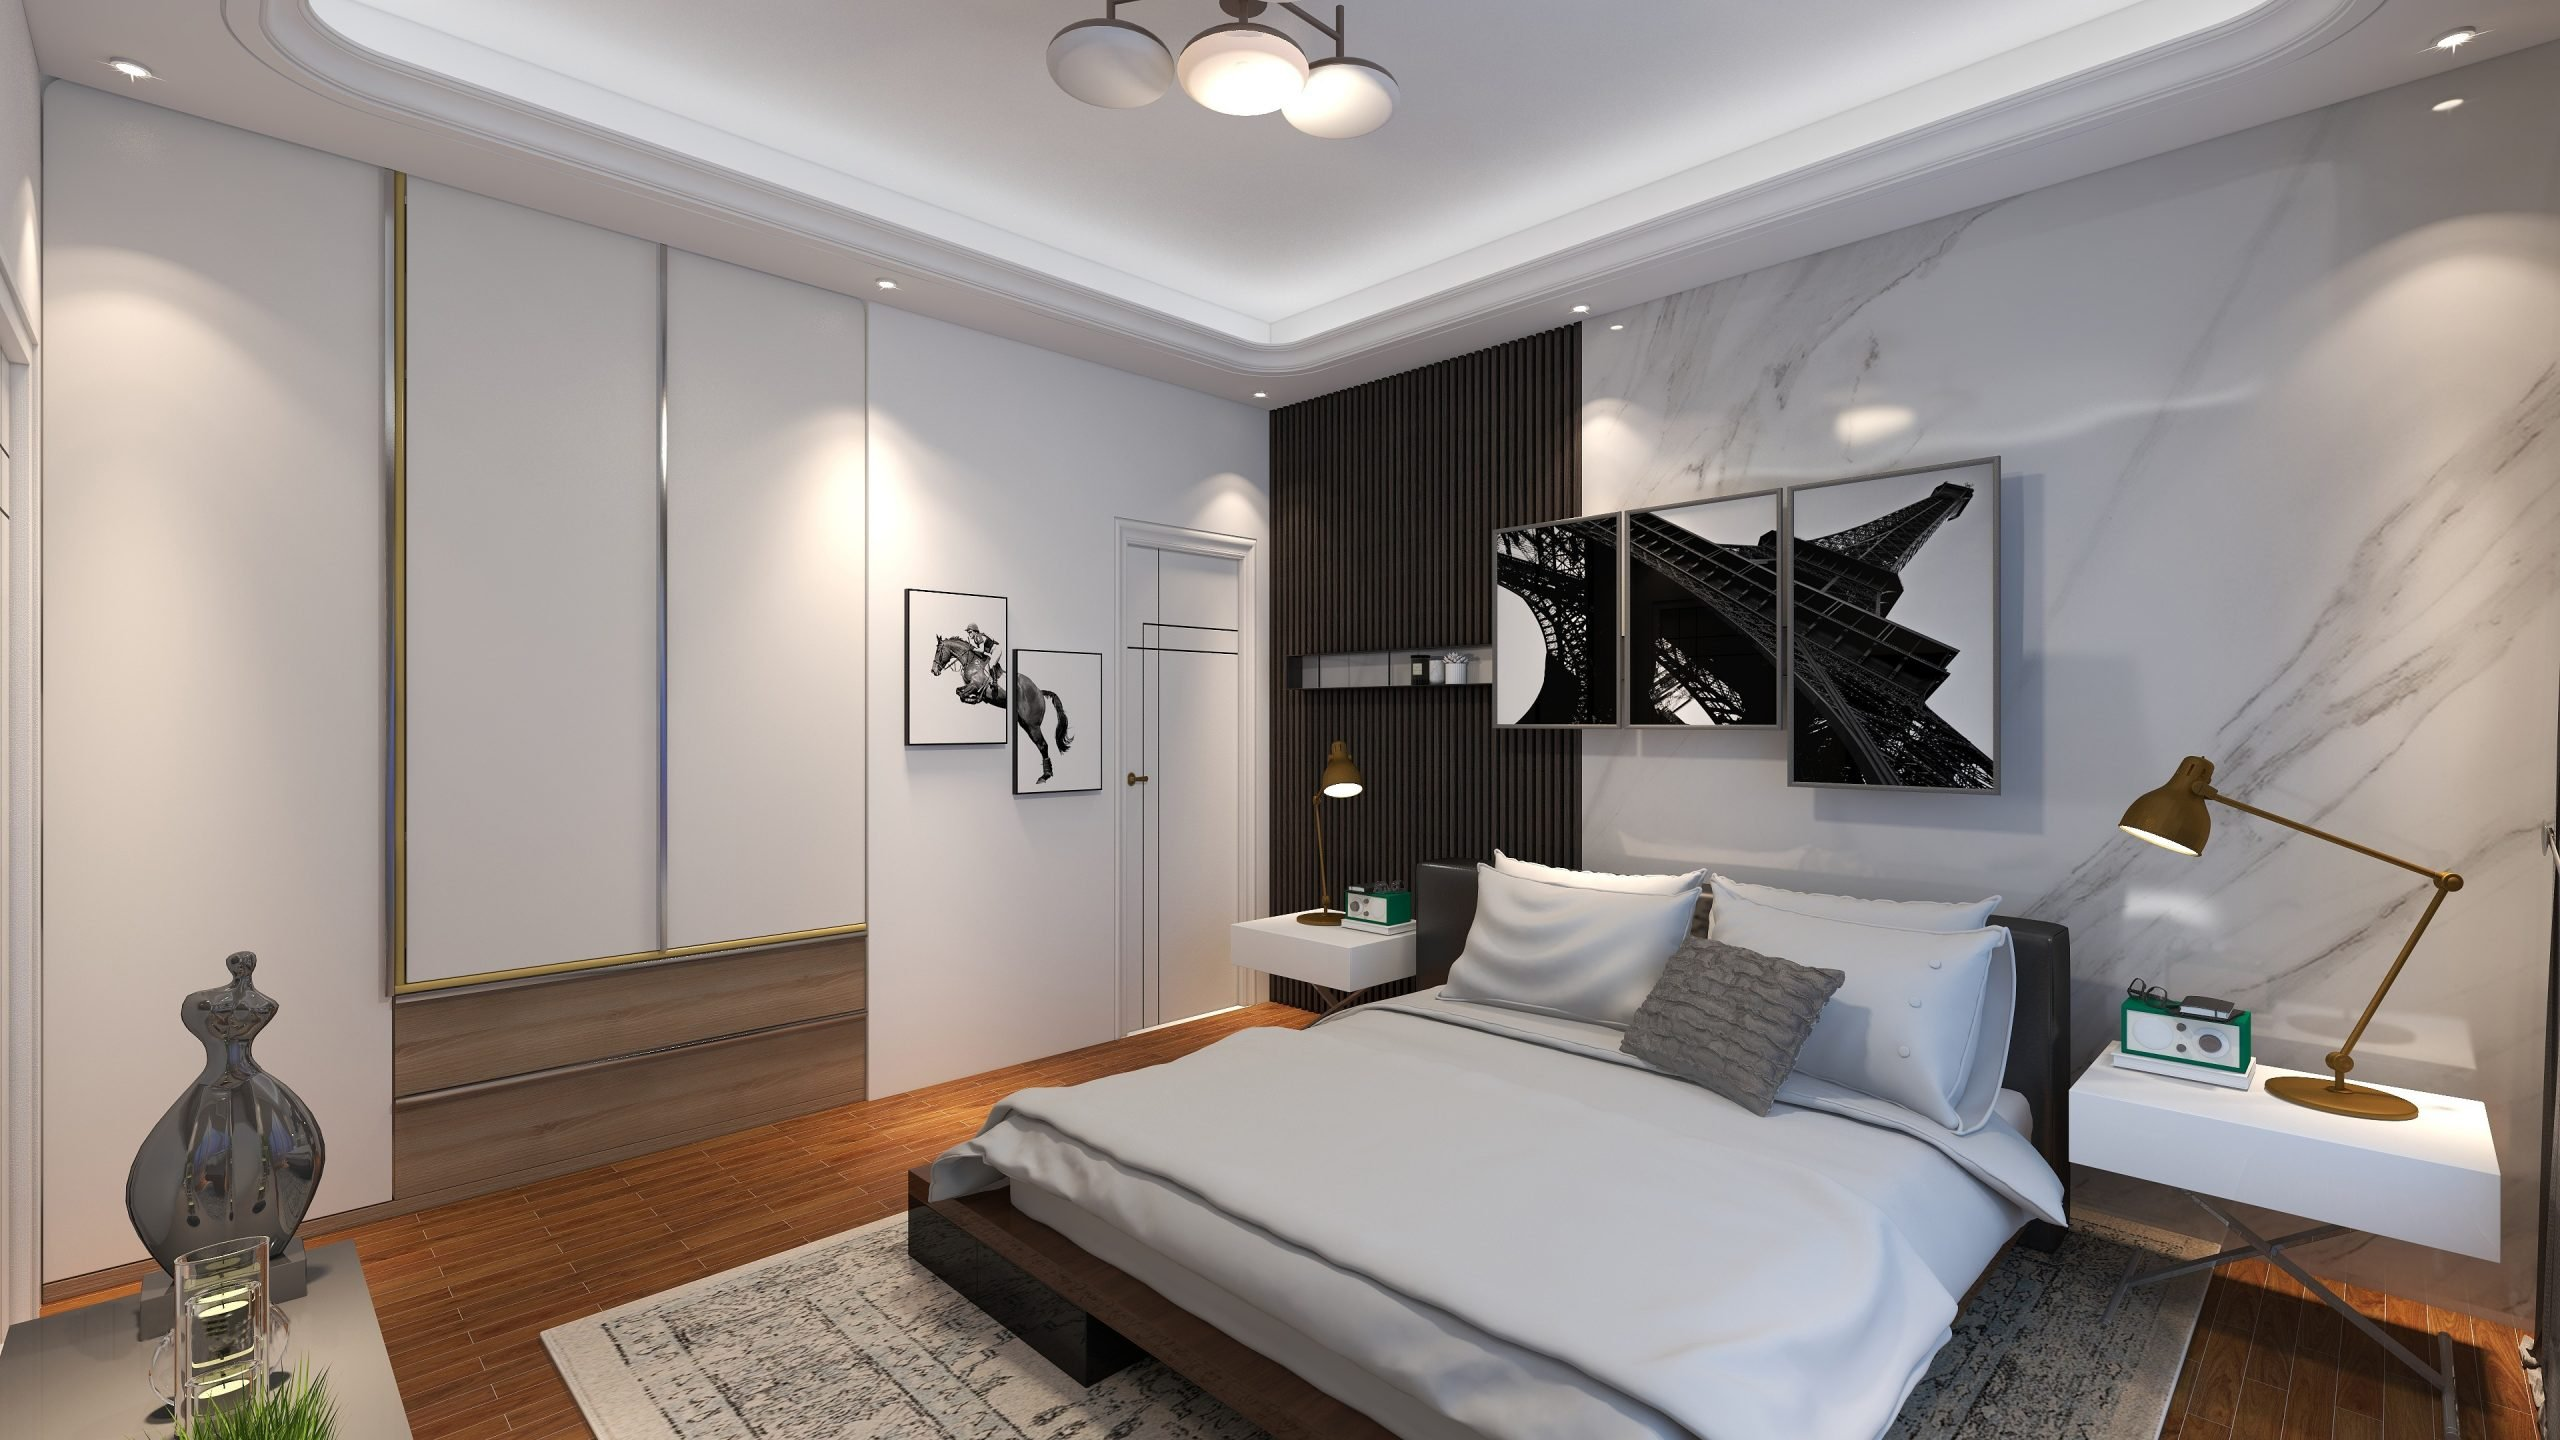 BED ROOM 1 A